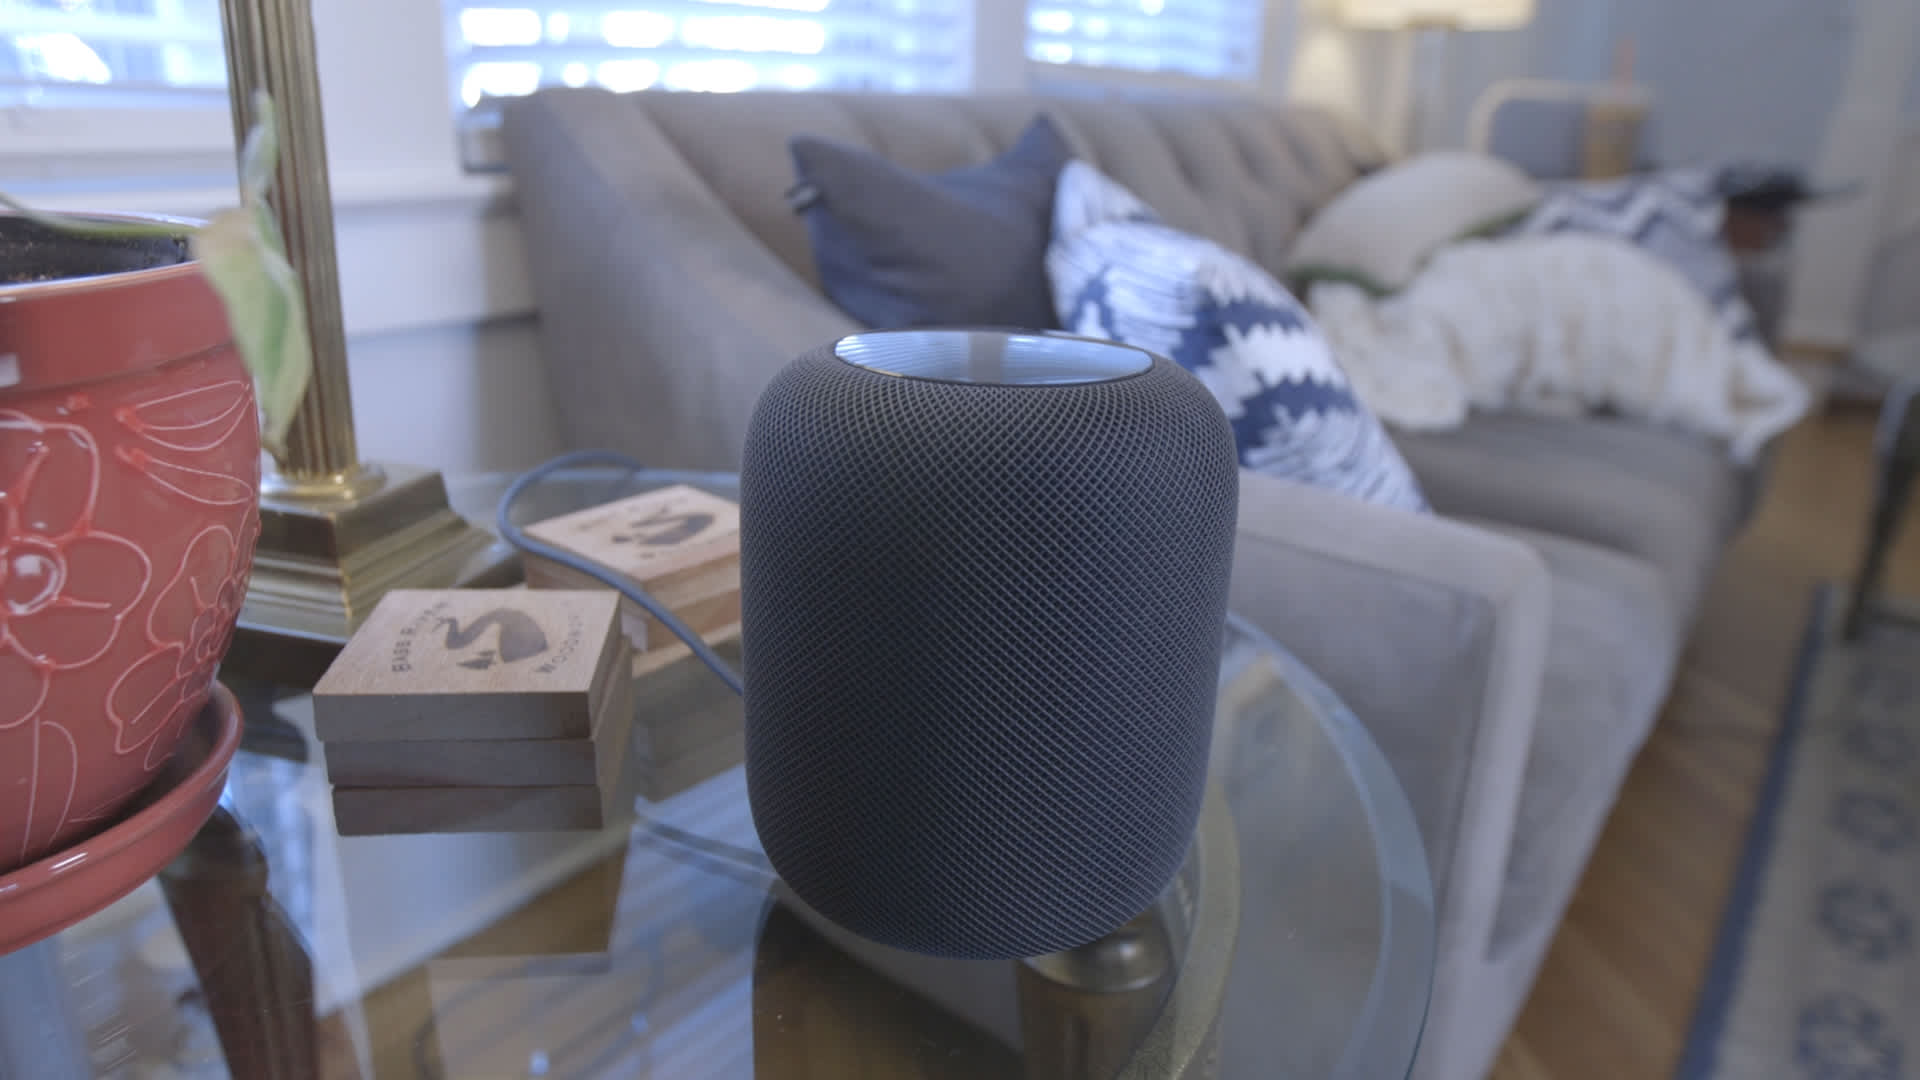 Apple hires an ex-Microsoft exec to revamp its smart home business, and catch up to Google, Amazon